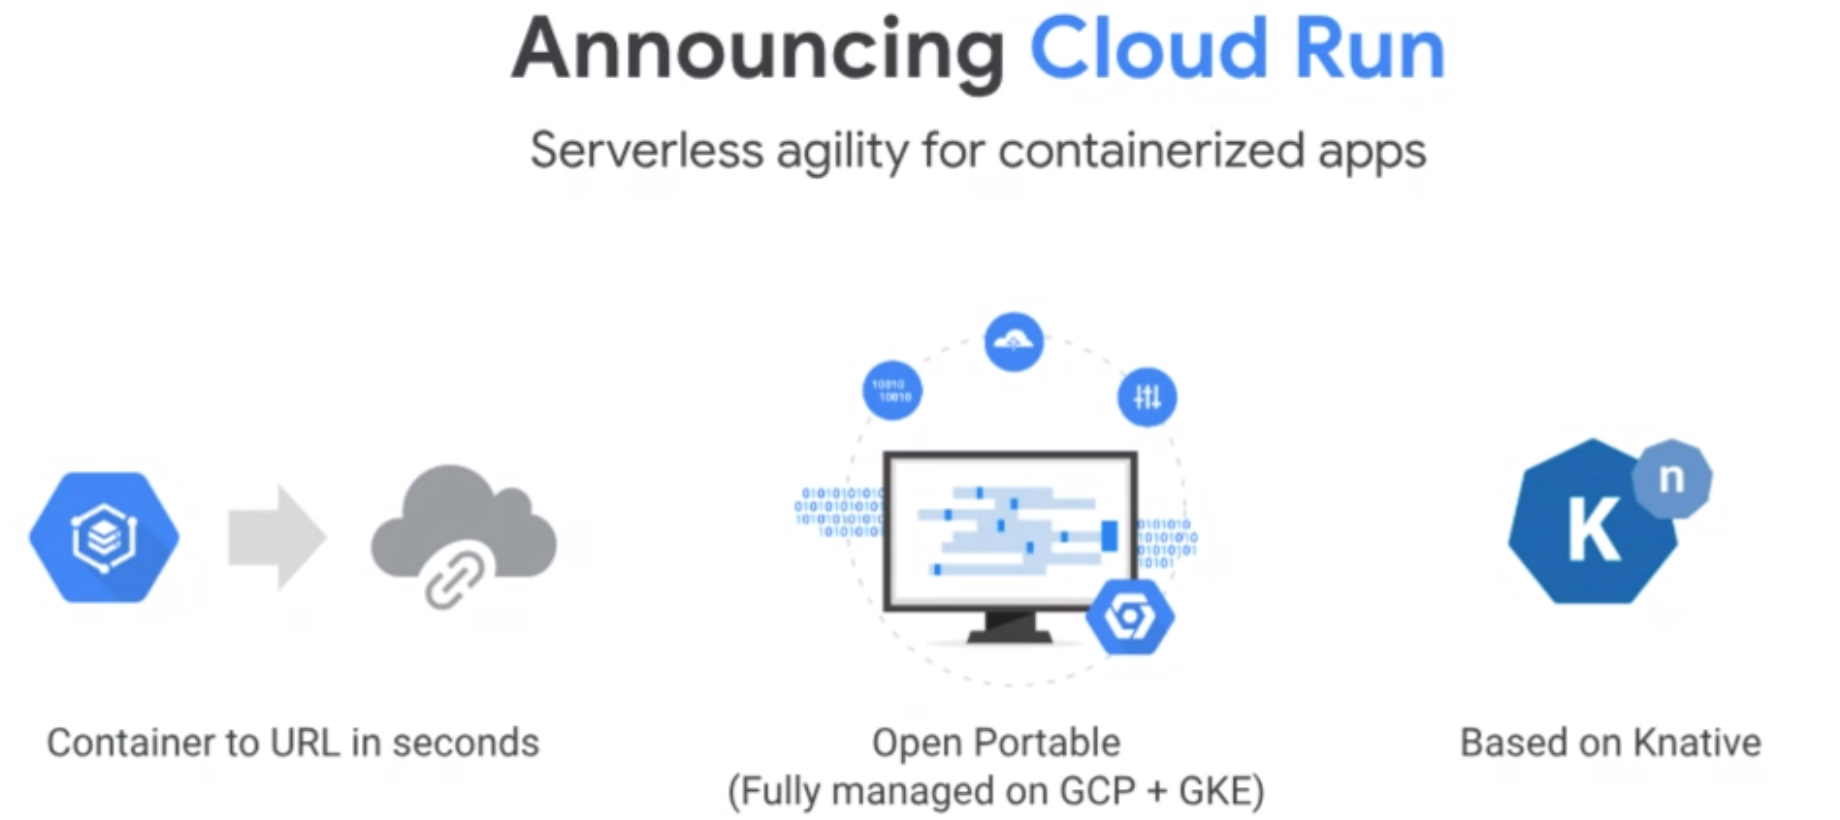 Google announces Cloud Run for open and portable serverless